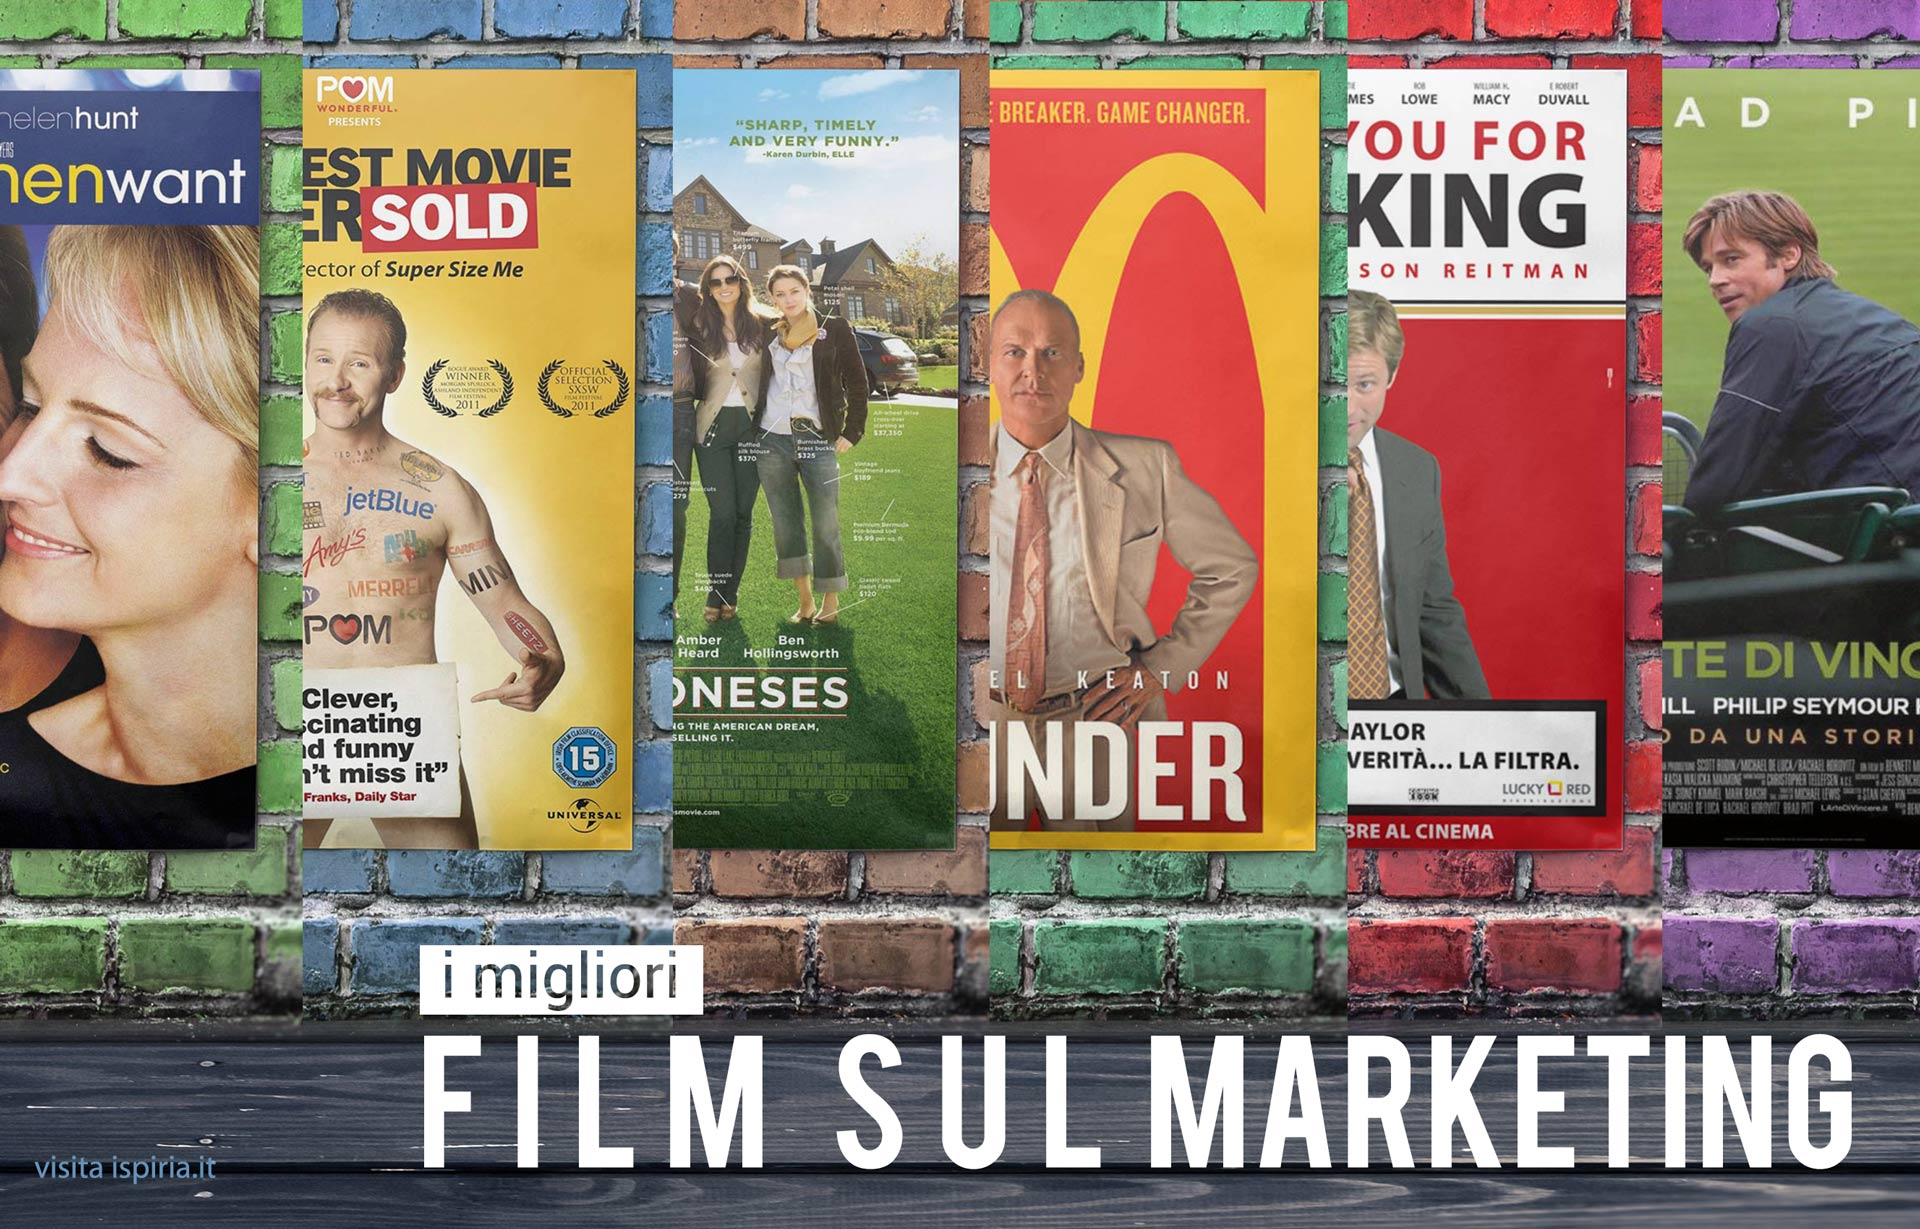 Film Sul Marketing